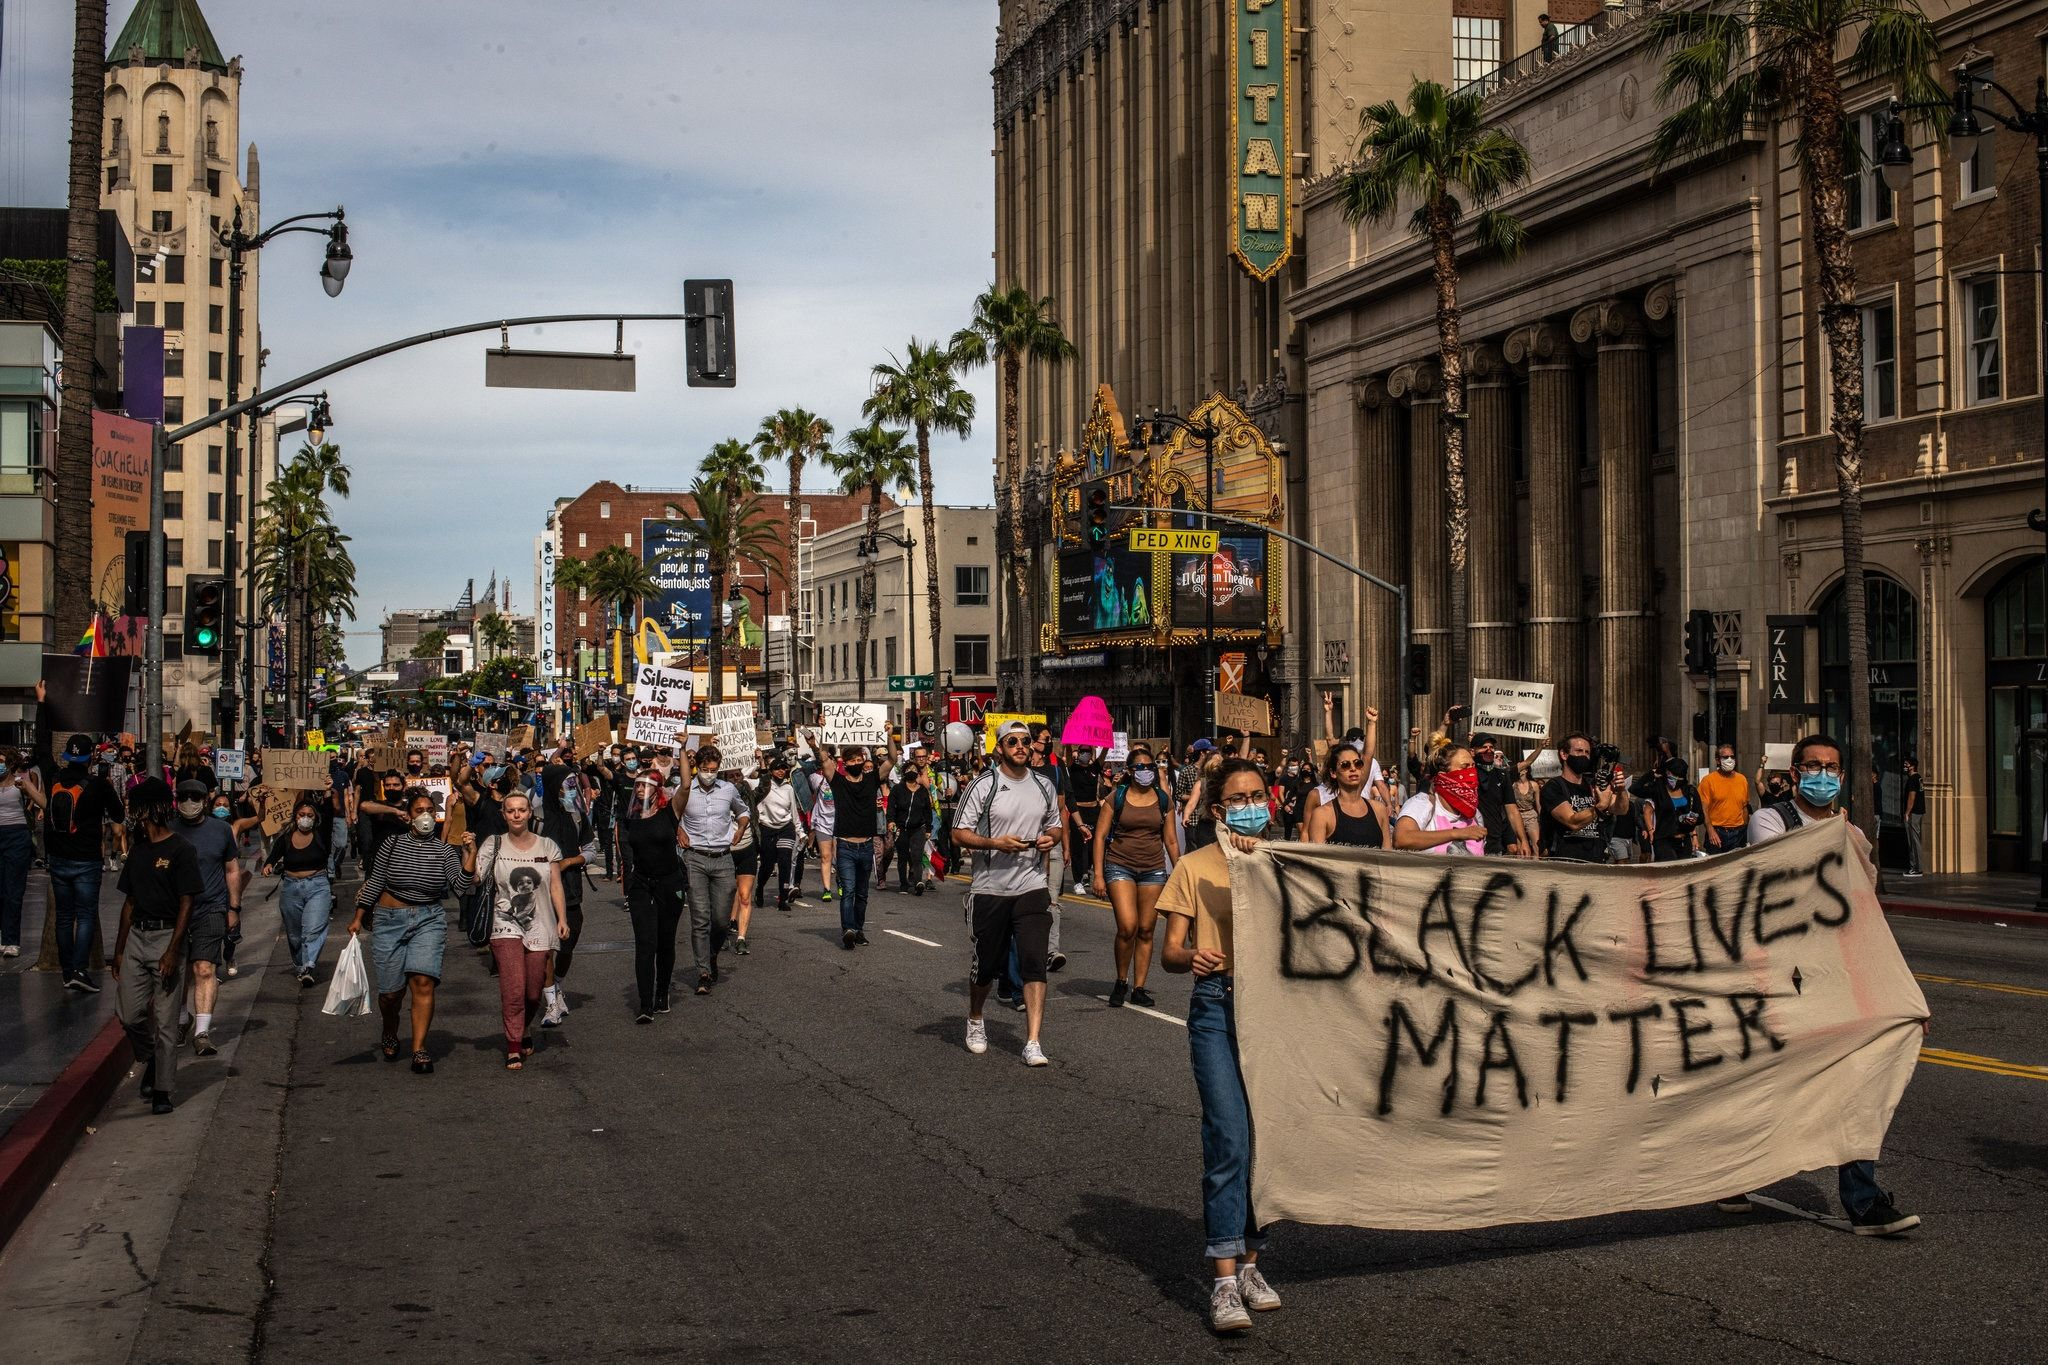 In Photos Protesters March In Cities Across America New York Times News Hollywood Location Santa Monica Promenade